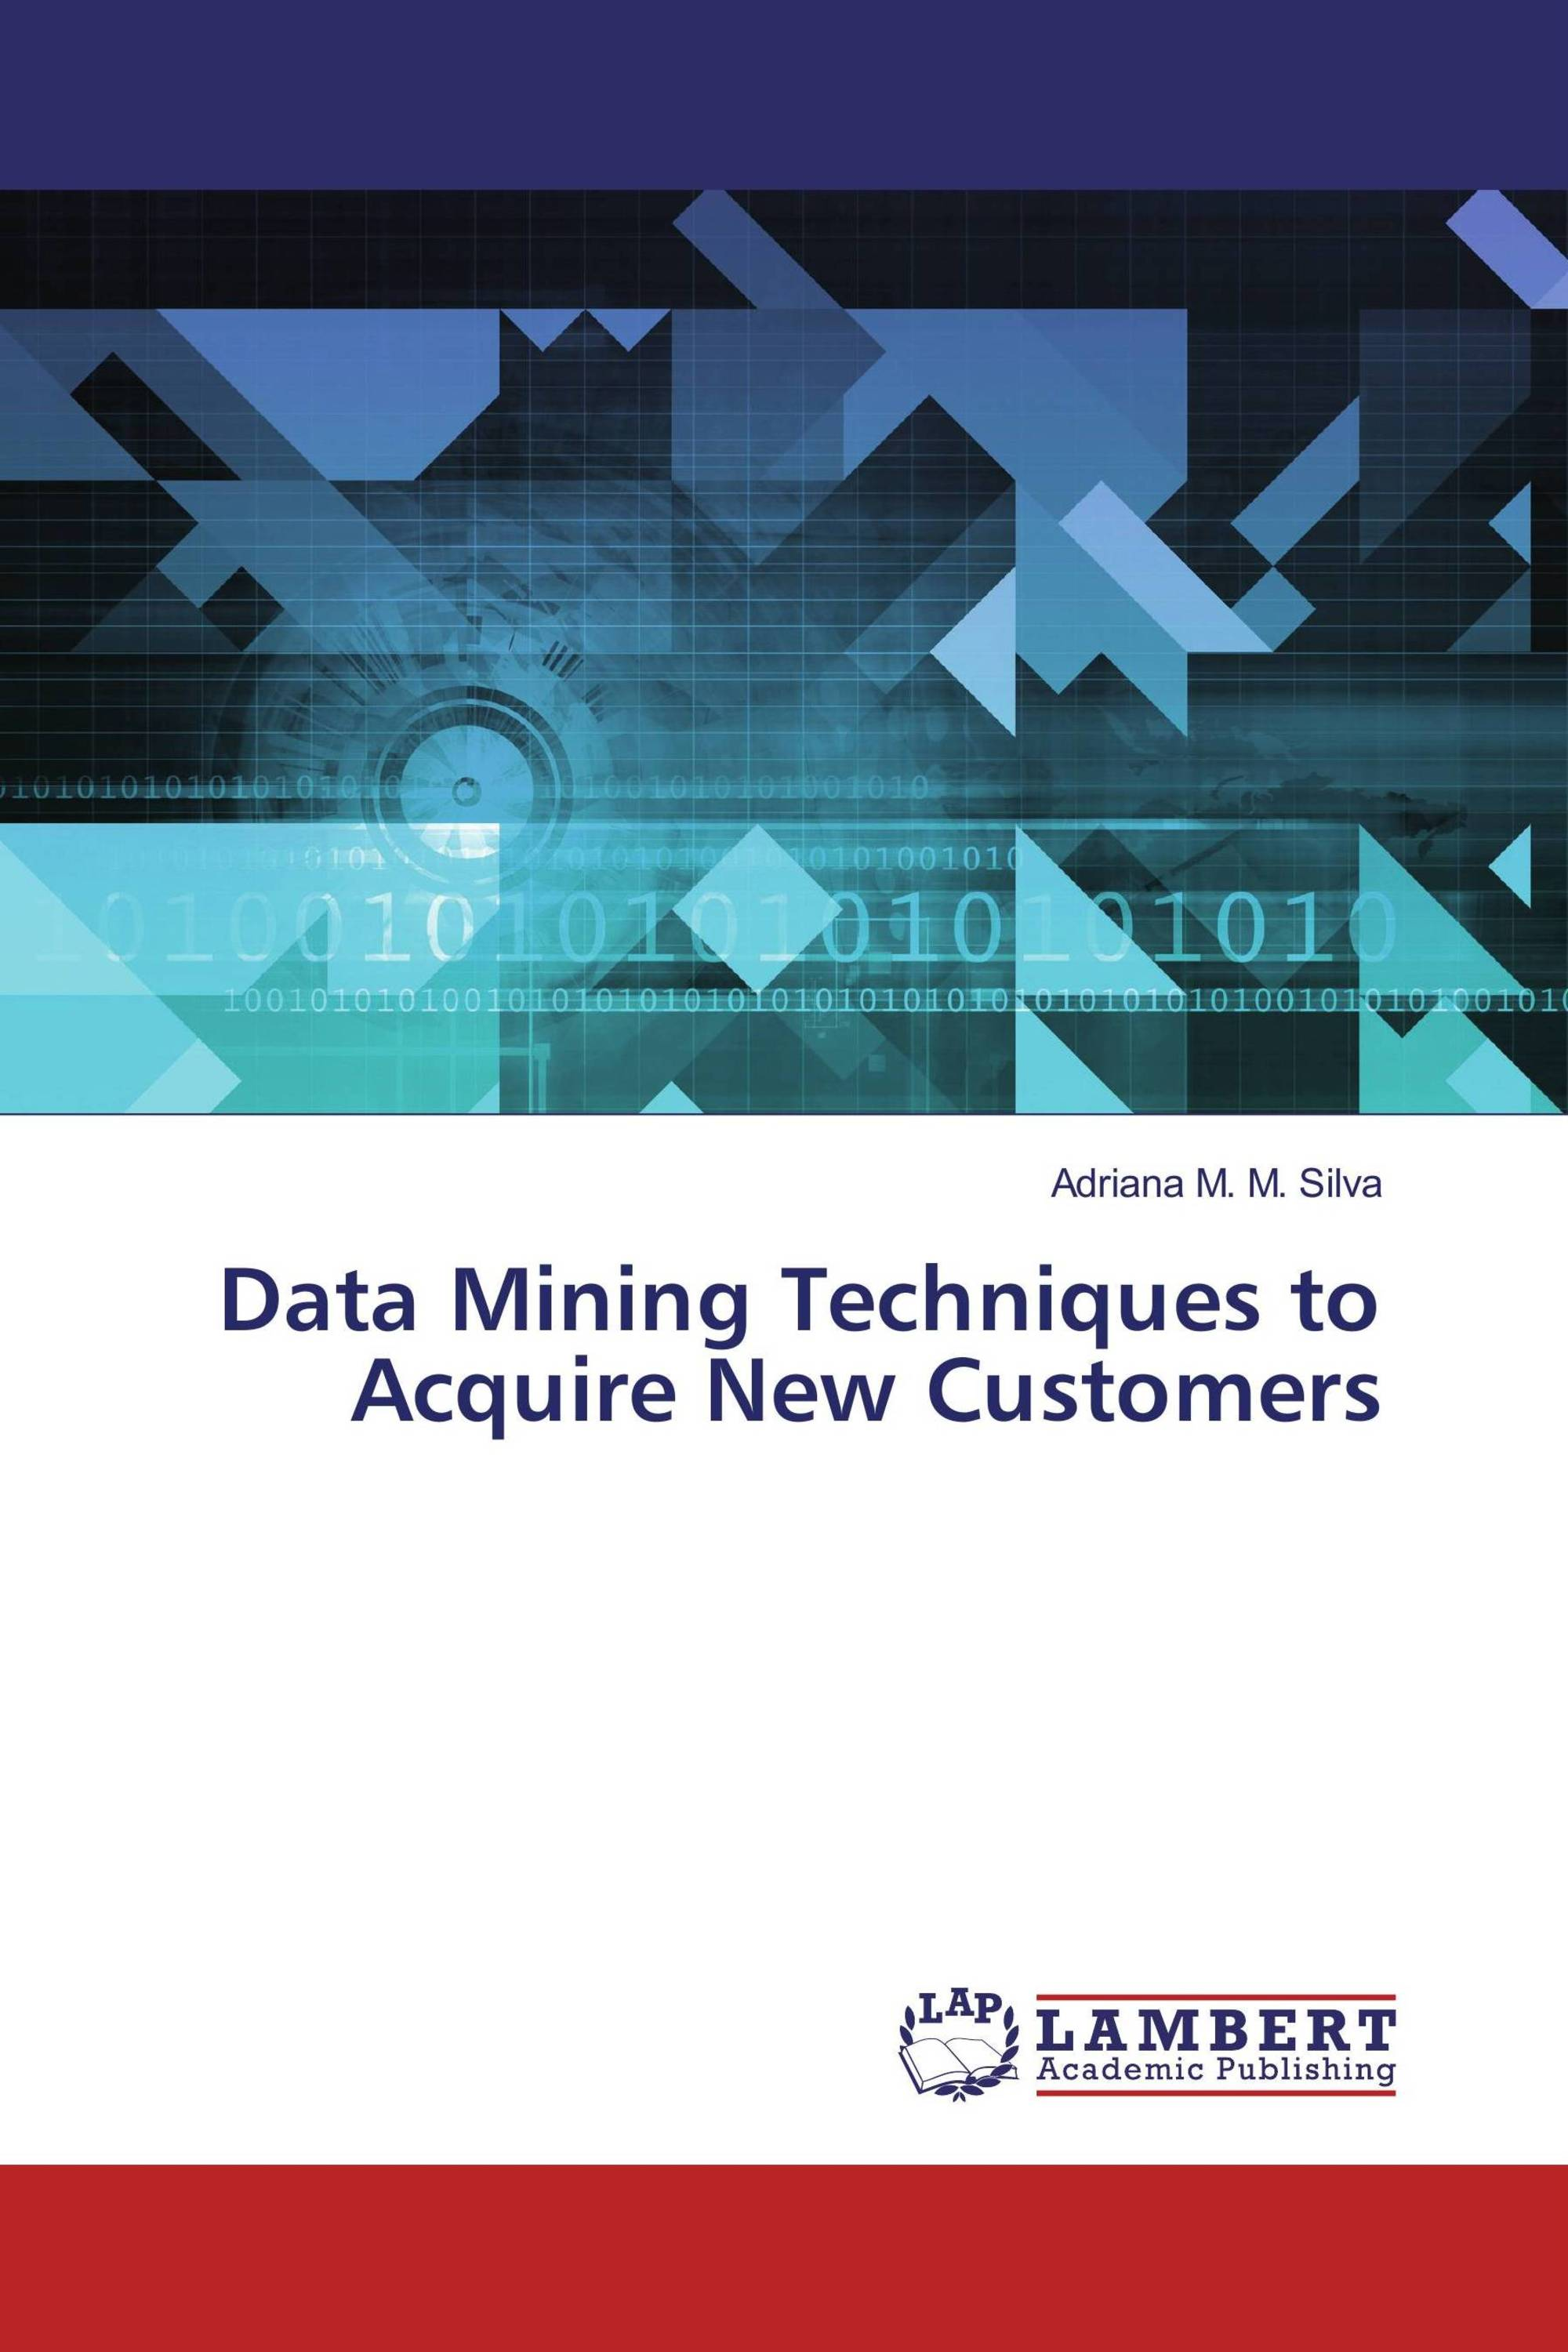 Data Mining Techniques to Acquire New Customers